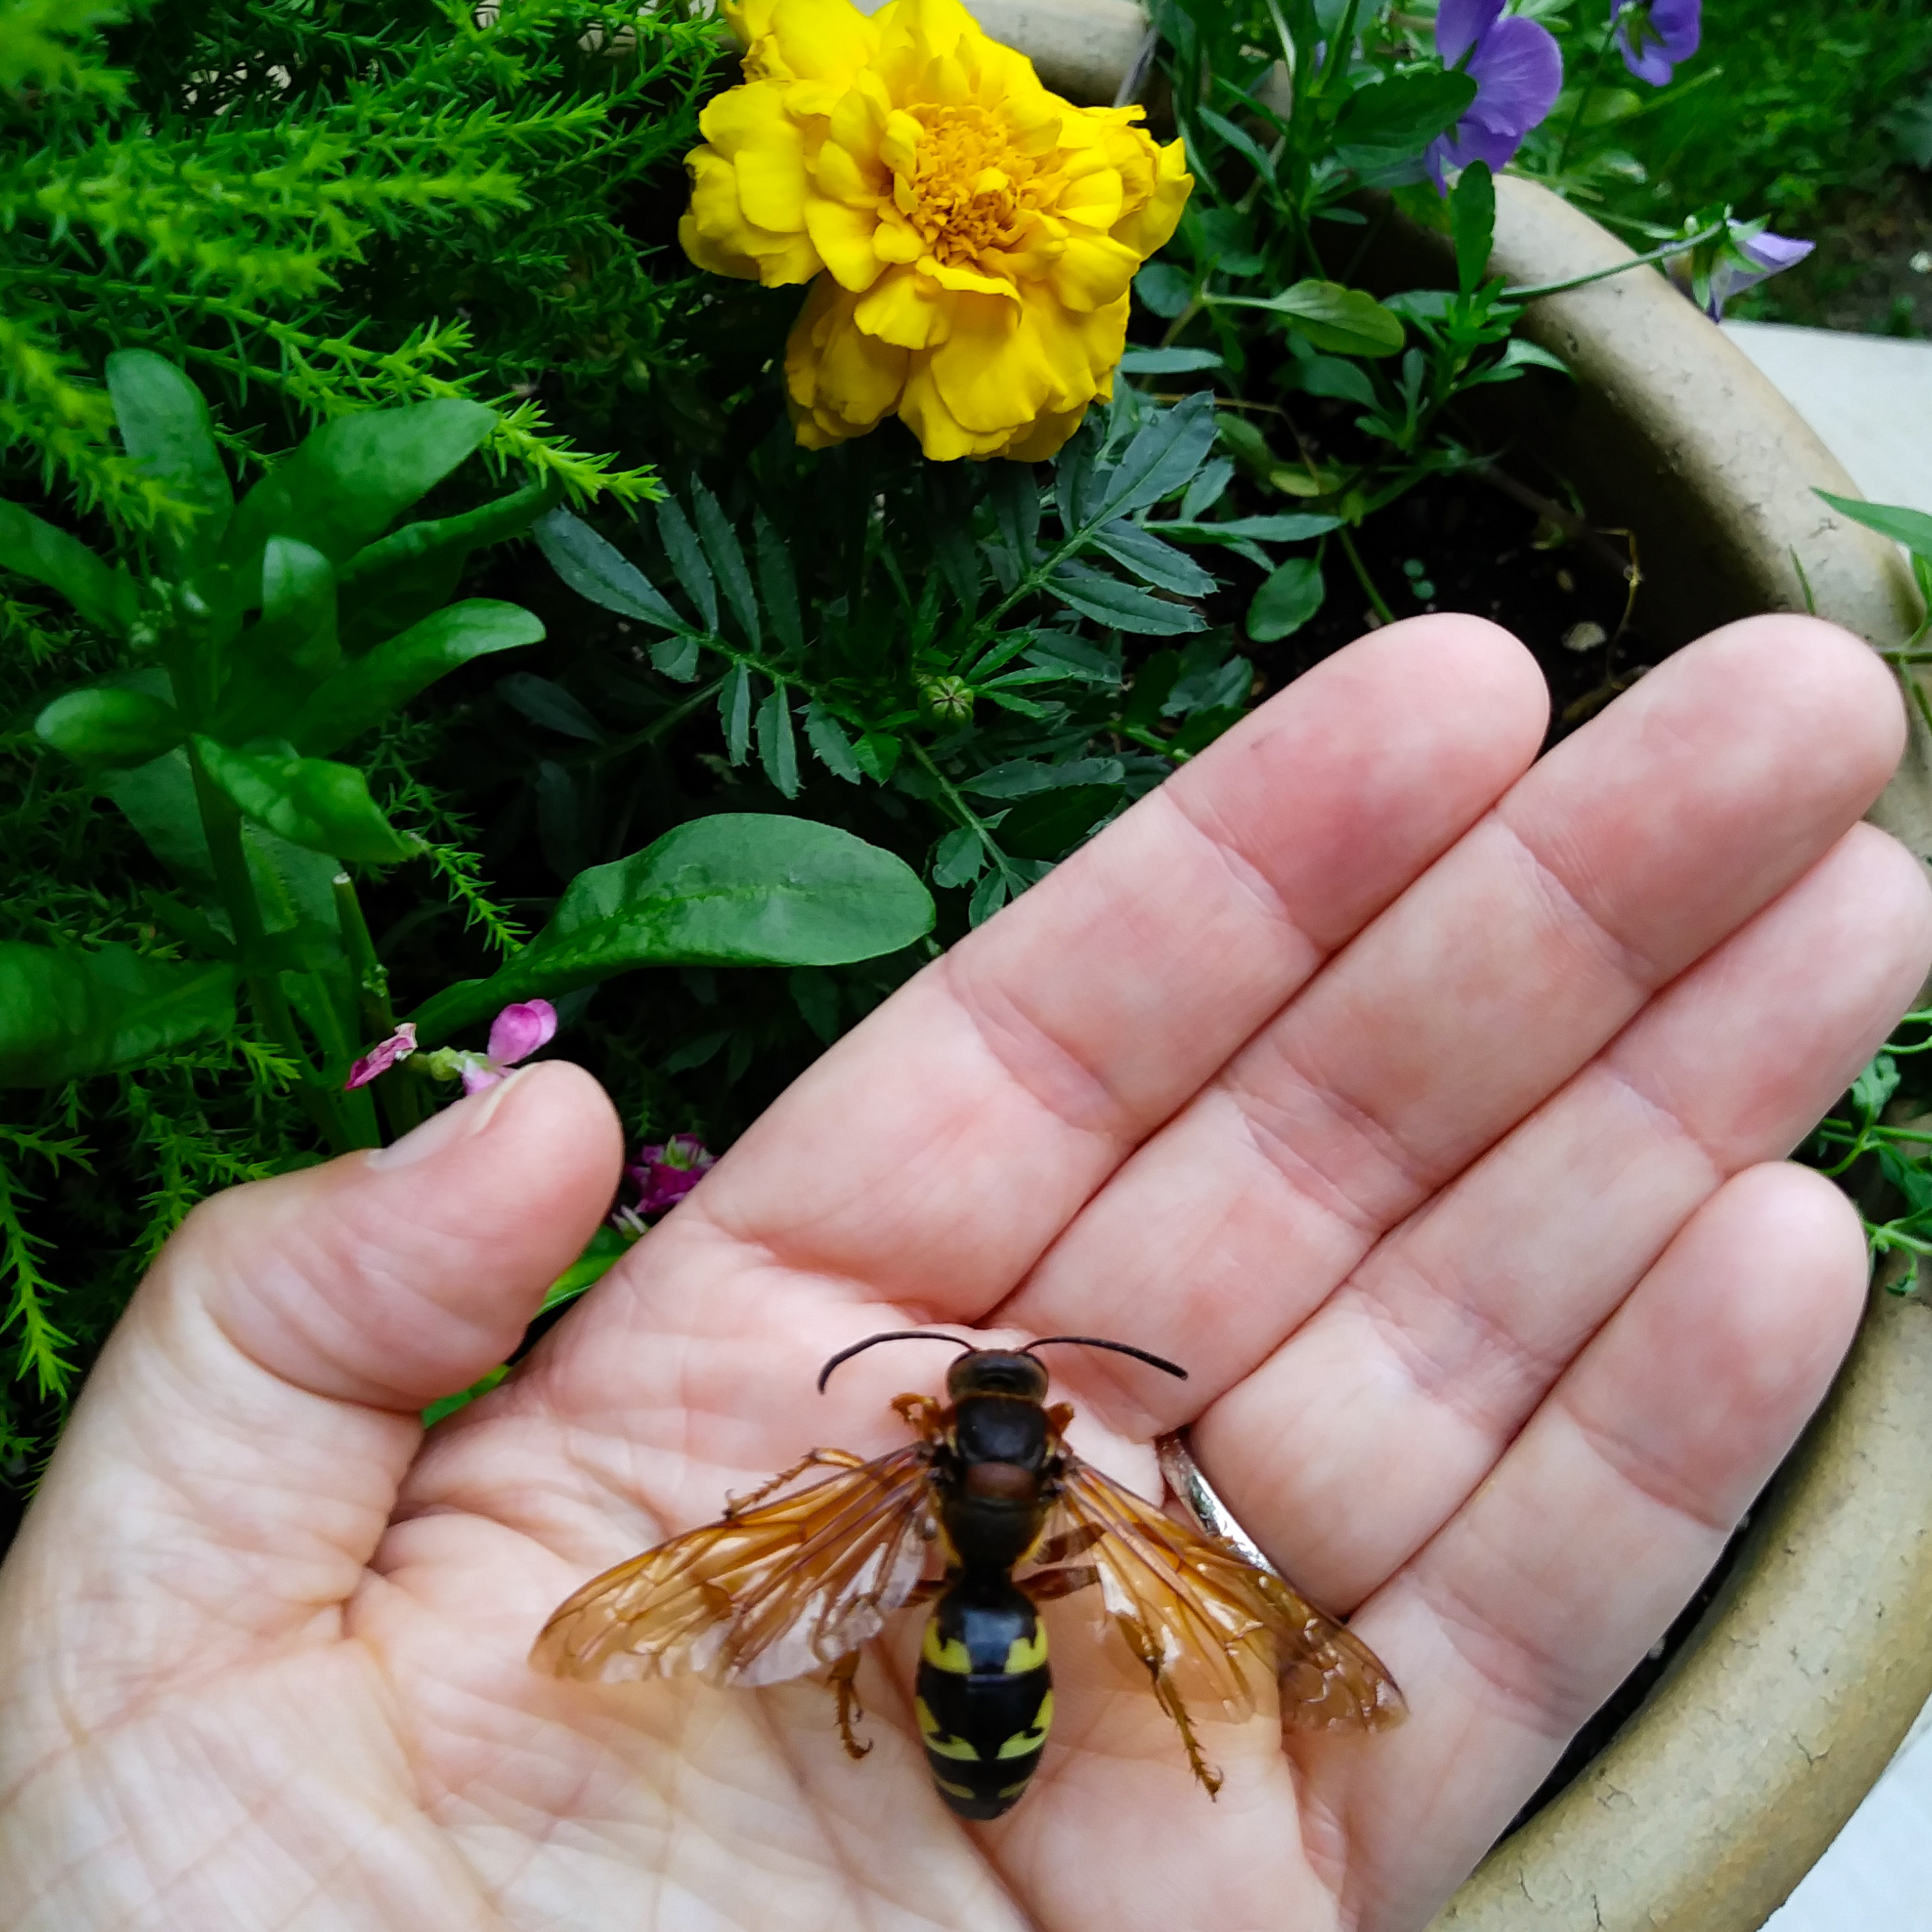 The author holds a dead cicada killer wasp in her palm. Photo © Lake County Forest Preserves.